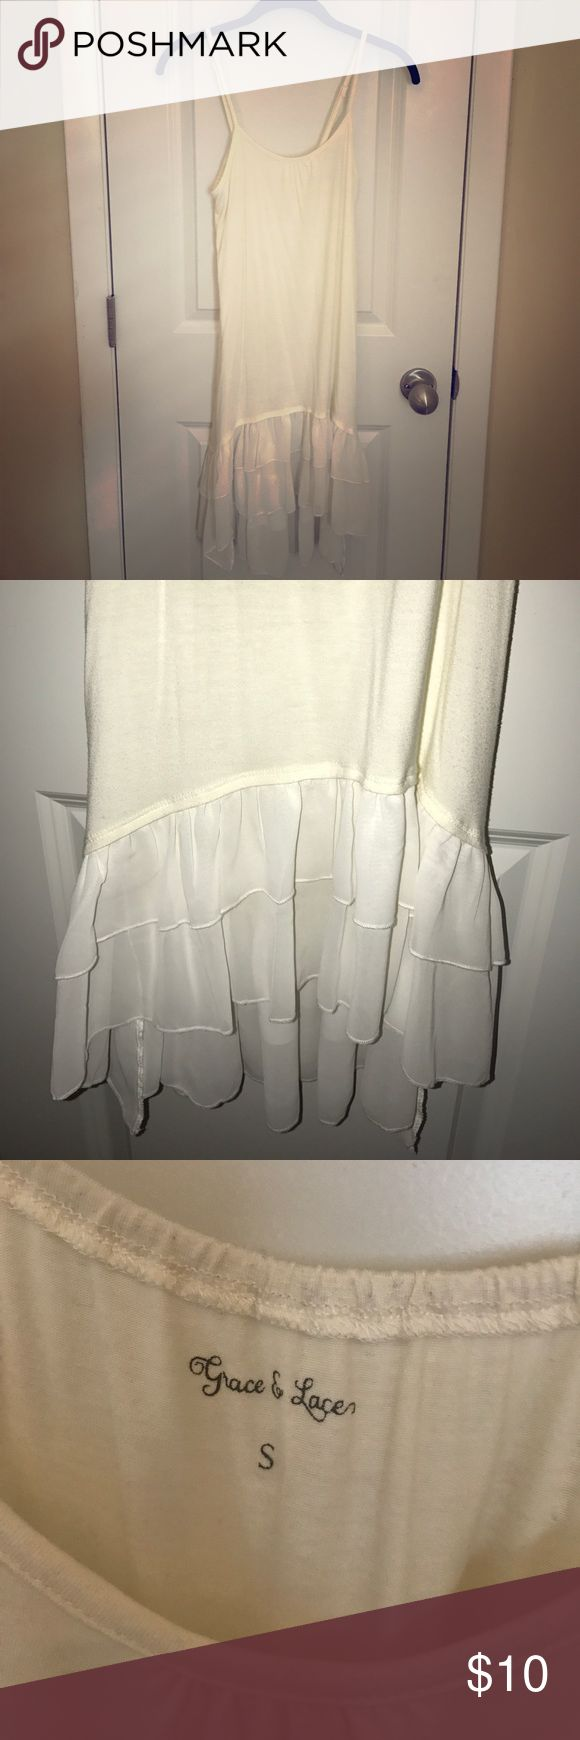 Grace & Lace Chiffon Ruffle Extender Grace & Lace size small with adjustable straps extender! This off white/cream colored cotton and chiffon extender is AMAZING under so many pieces! Only worn once. Great shape! Offers welcome! Tops